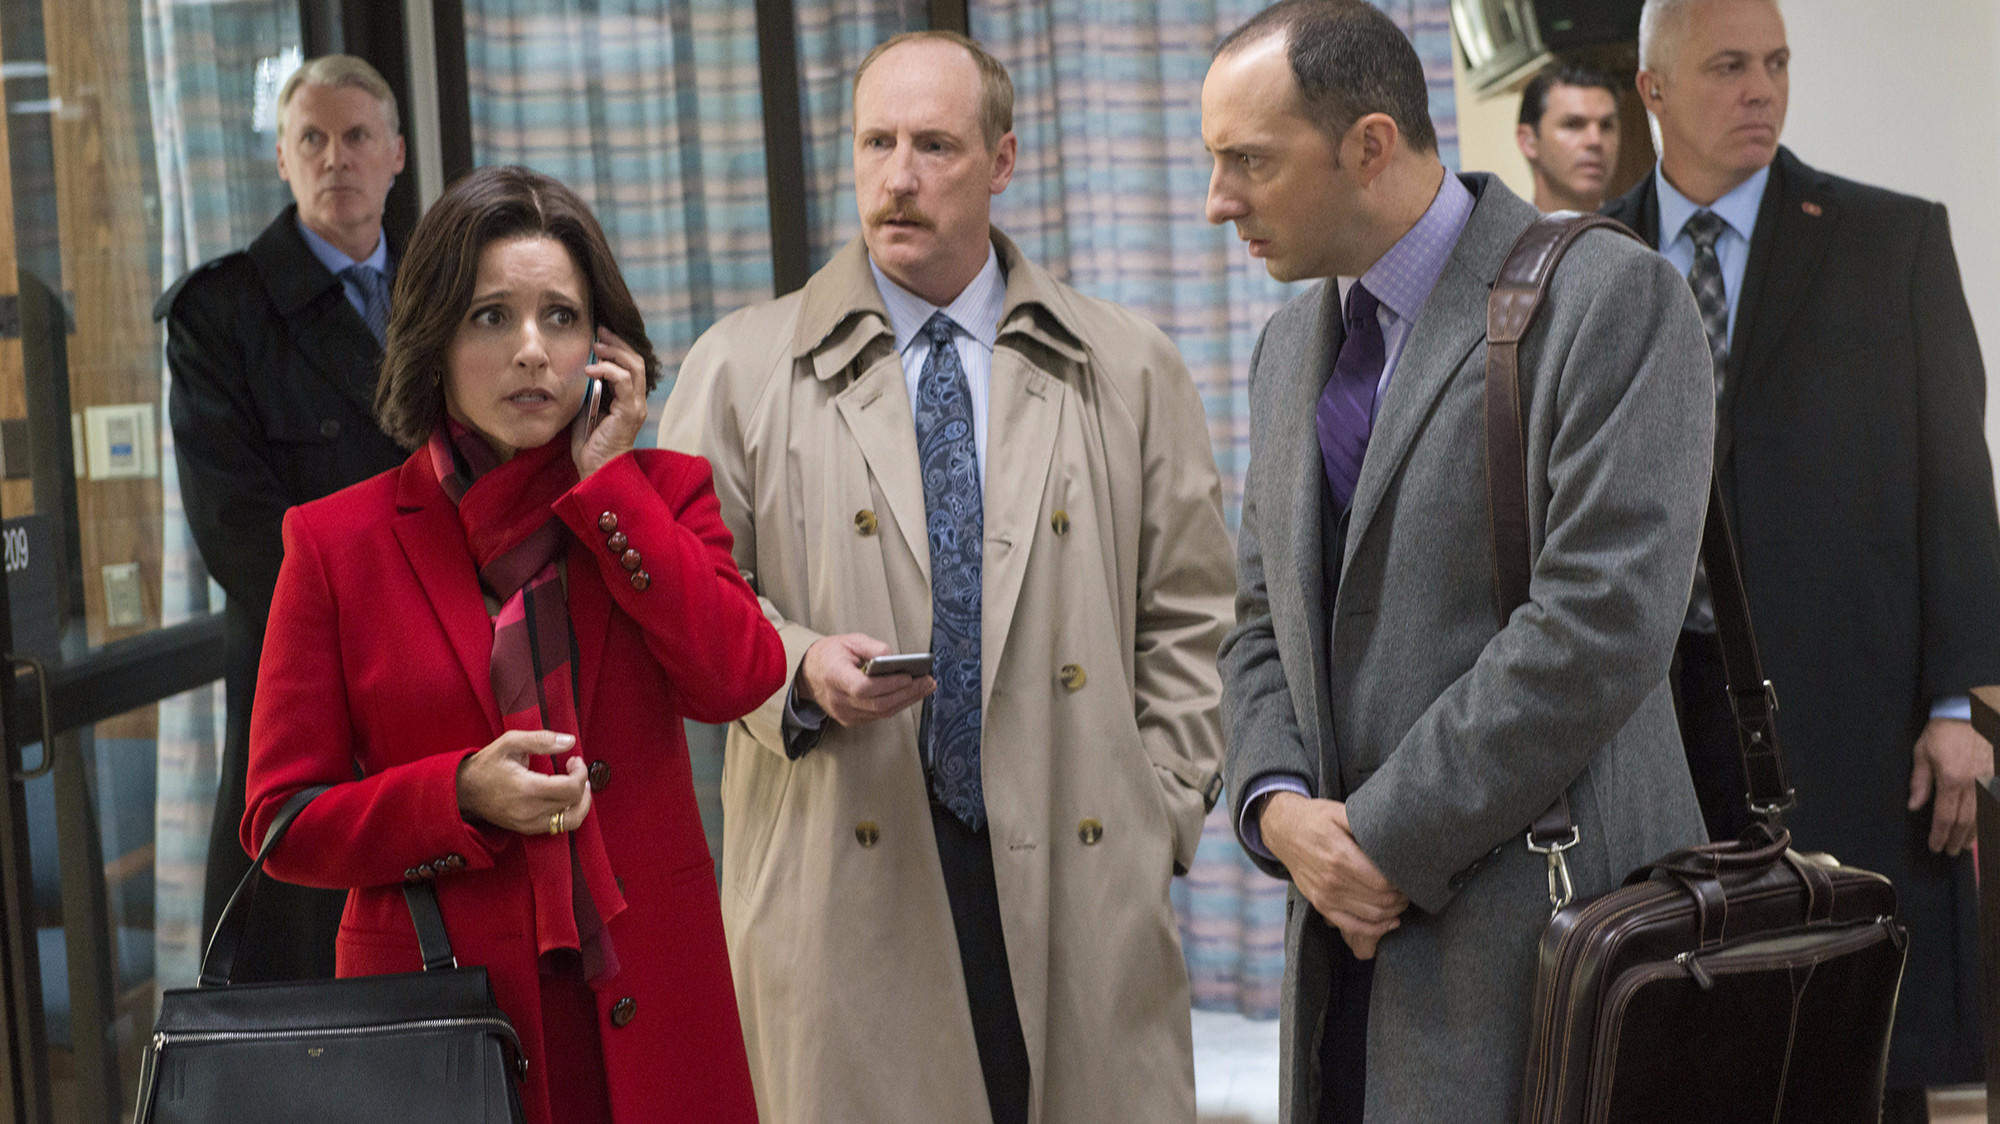 """Julia Louis-Dreyfus announced Wednesday that HBO's """"Veep"""" will end with Season 7 next year. (Lacey Terrell / HBO)"""